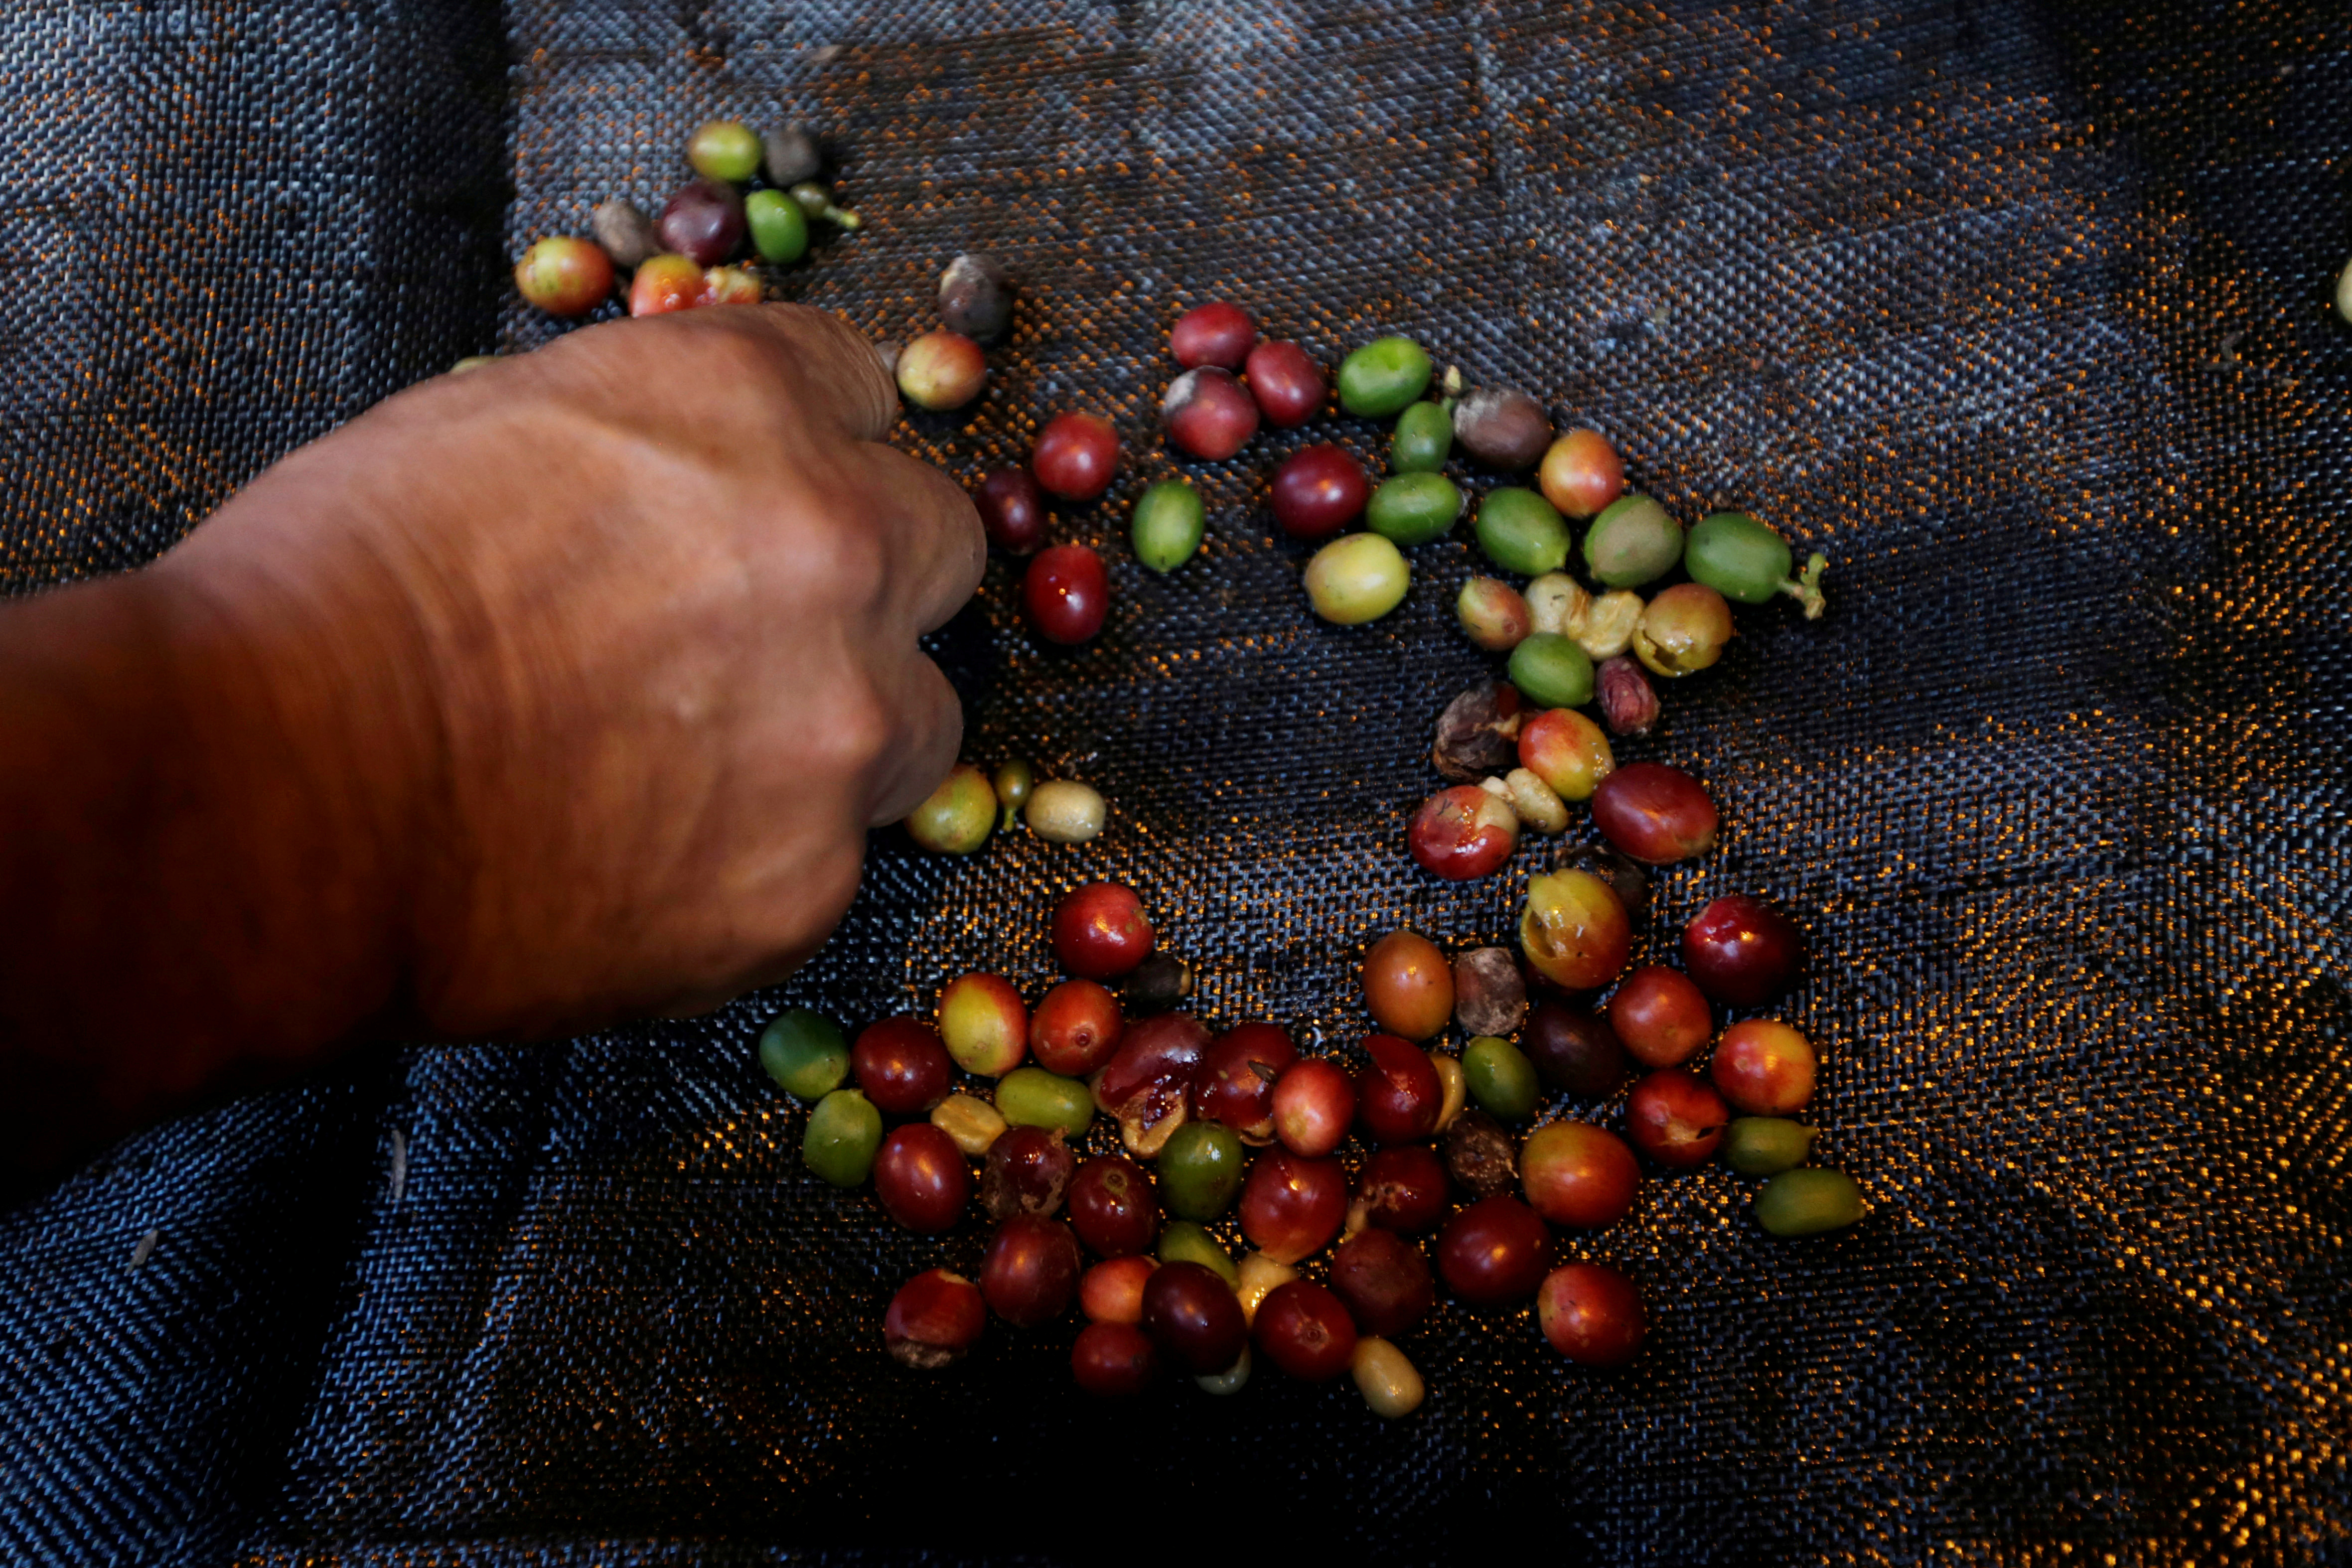 Colombian proposal to ditch NY coffee price may send buyers elsewhere